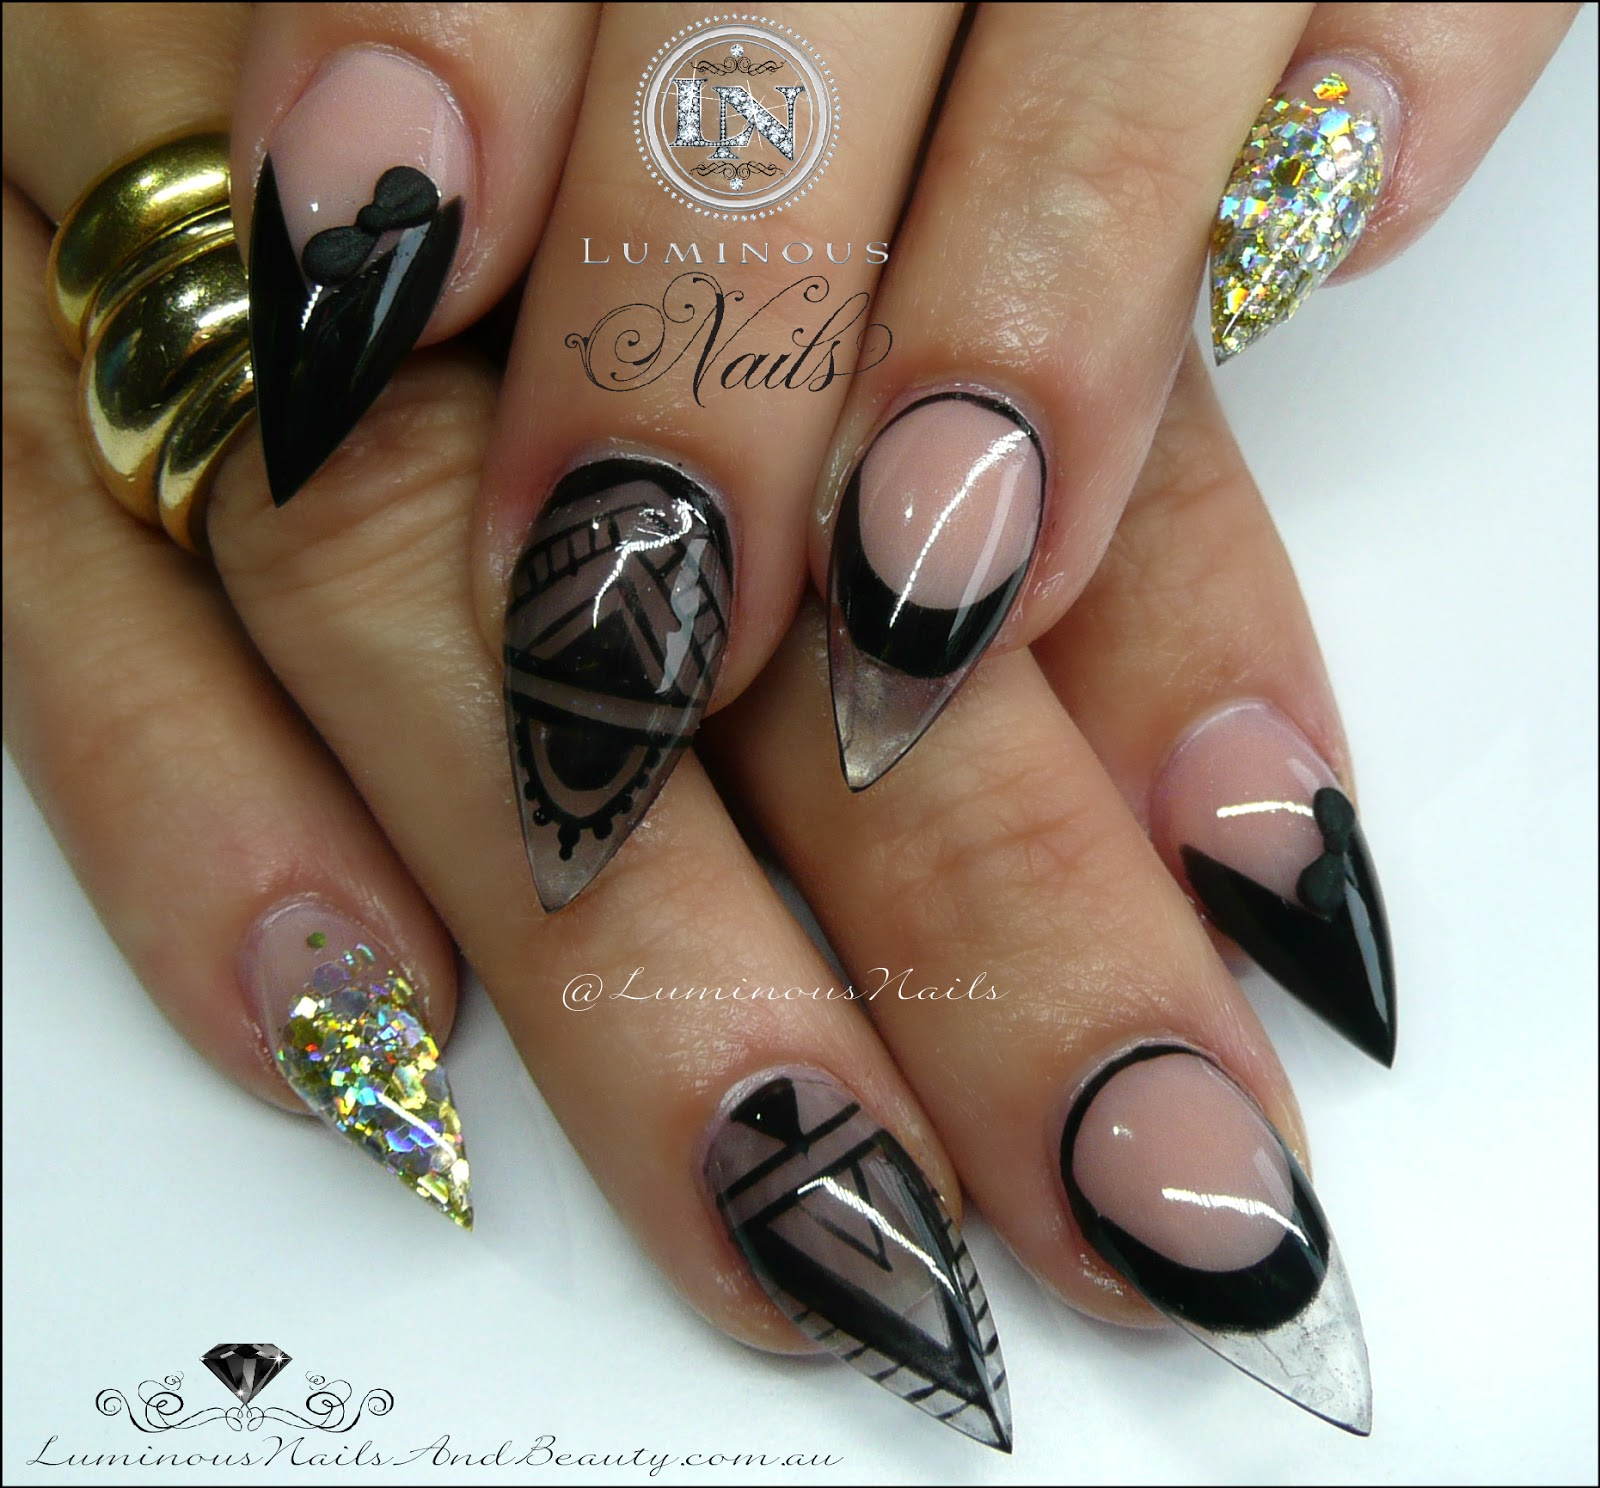 Luminous Nails: Black & Gold Acrylic Nails... Inspired By Get Buffed